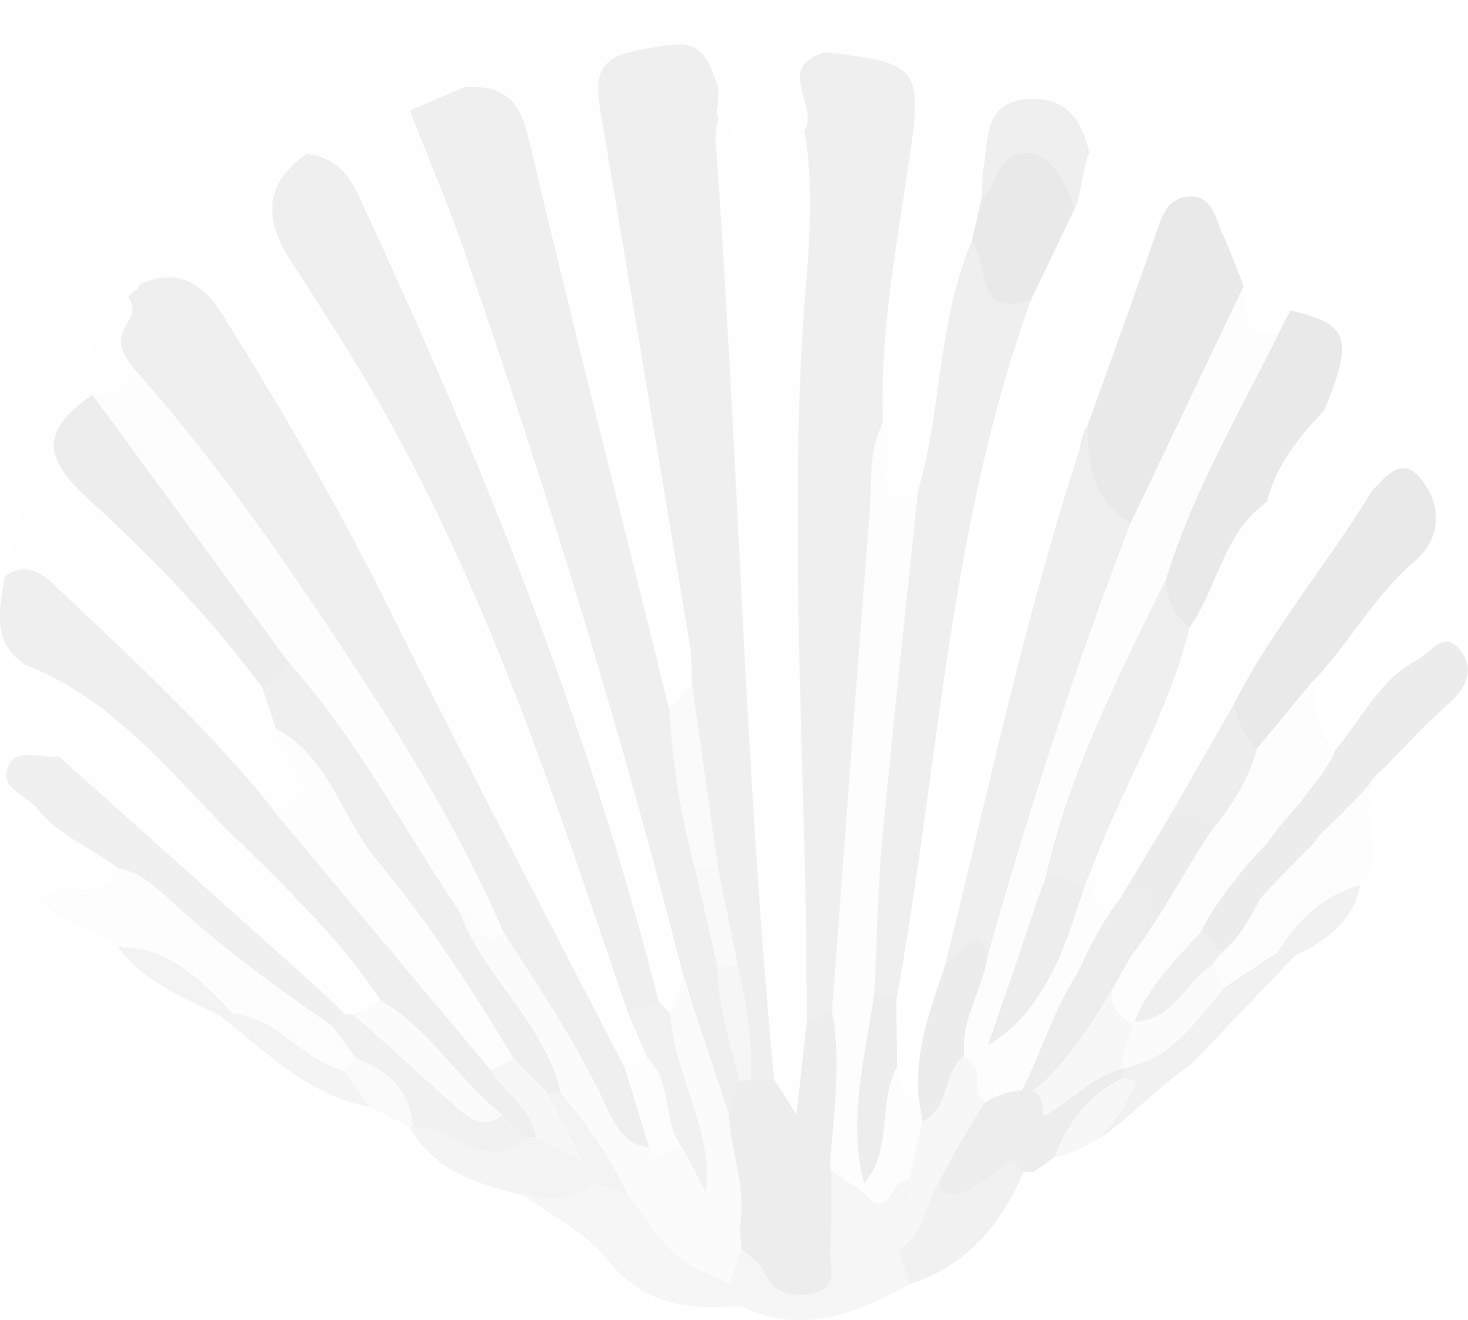 Shell - for use on white ONLY.jpg